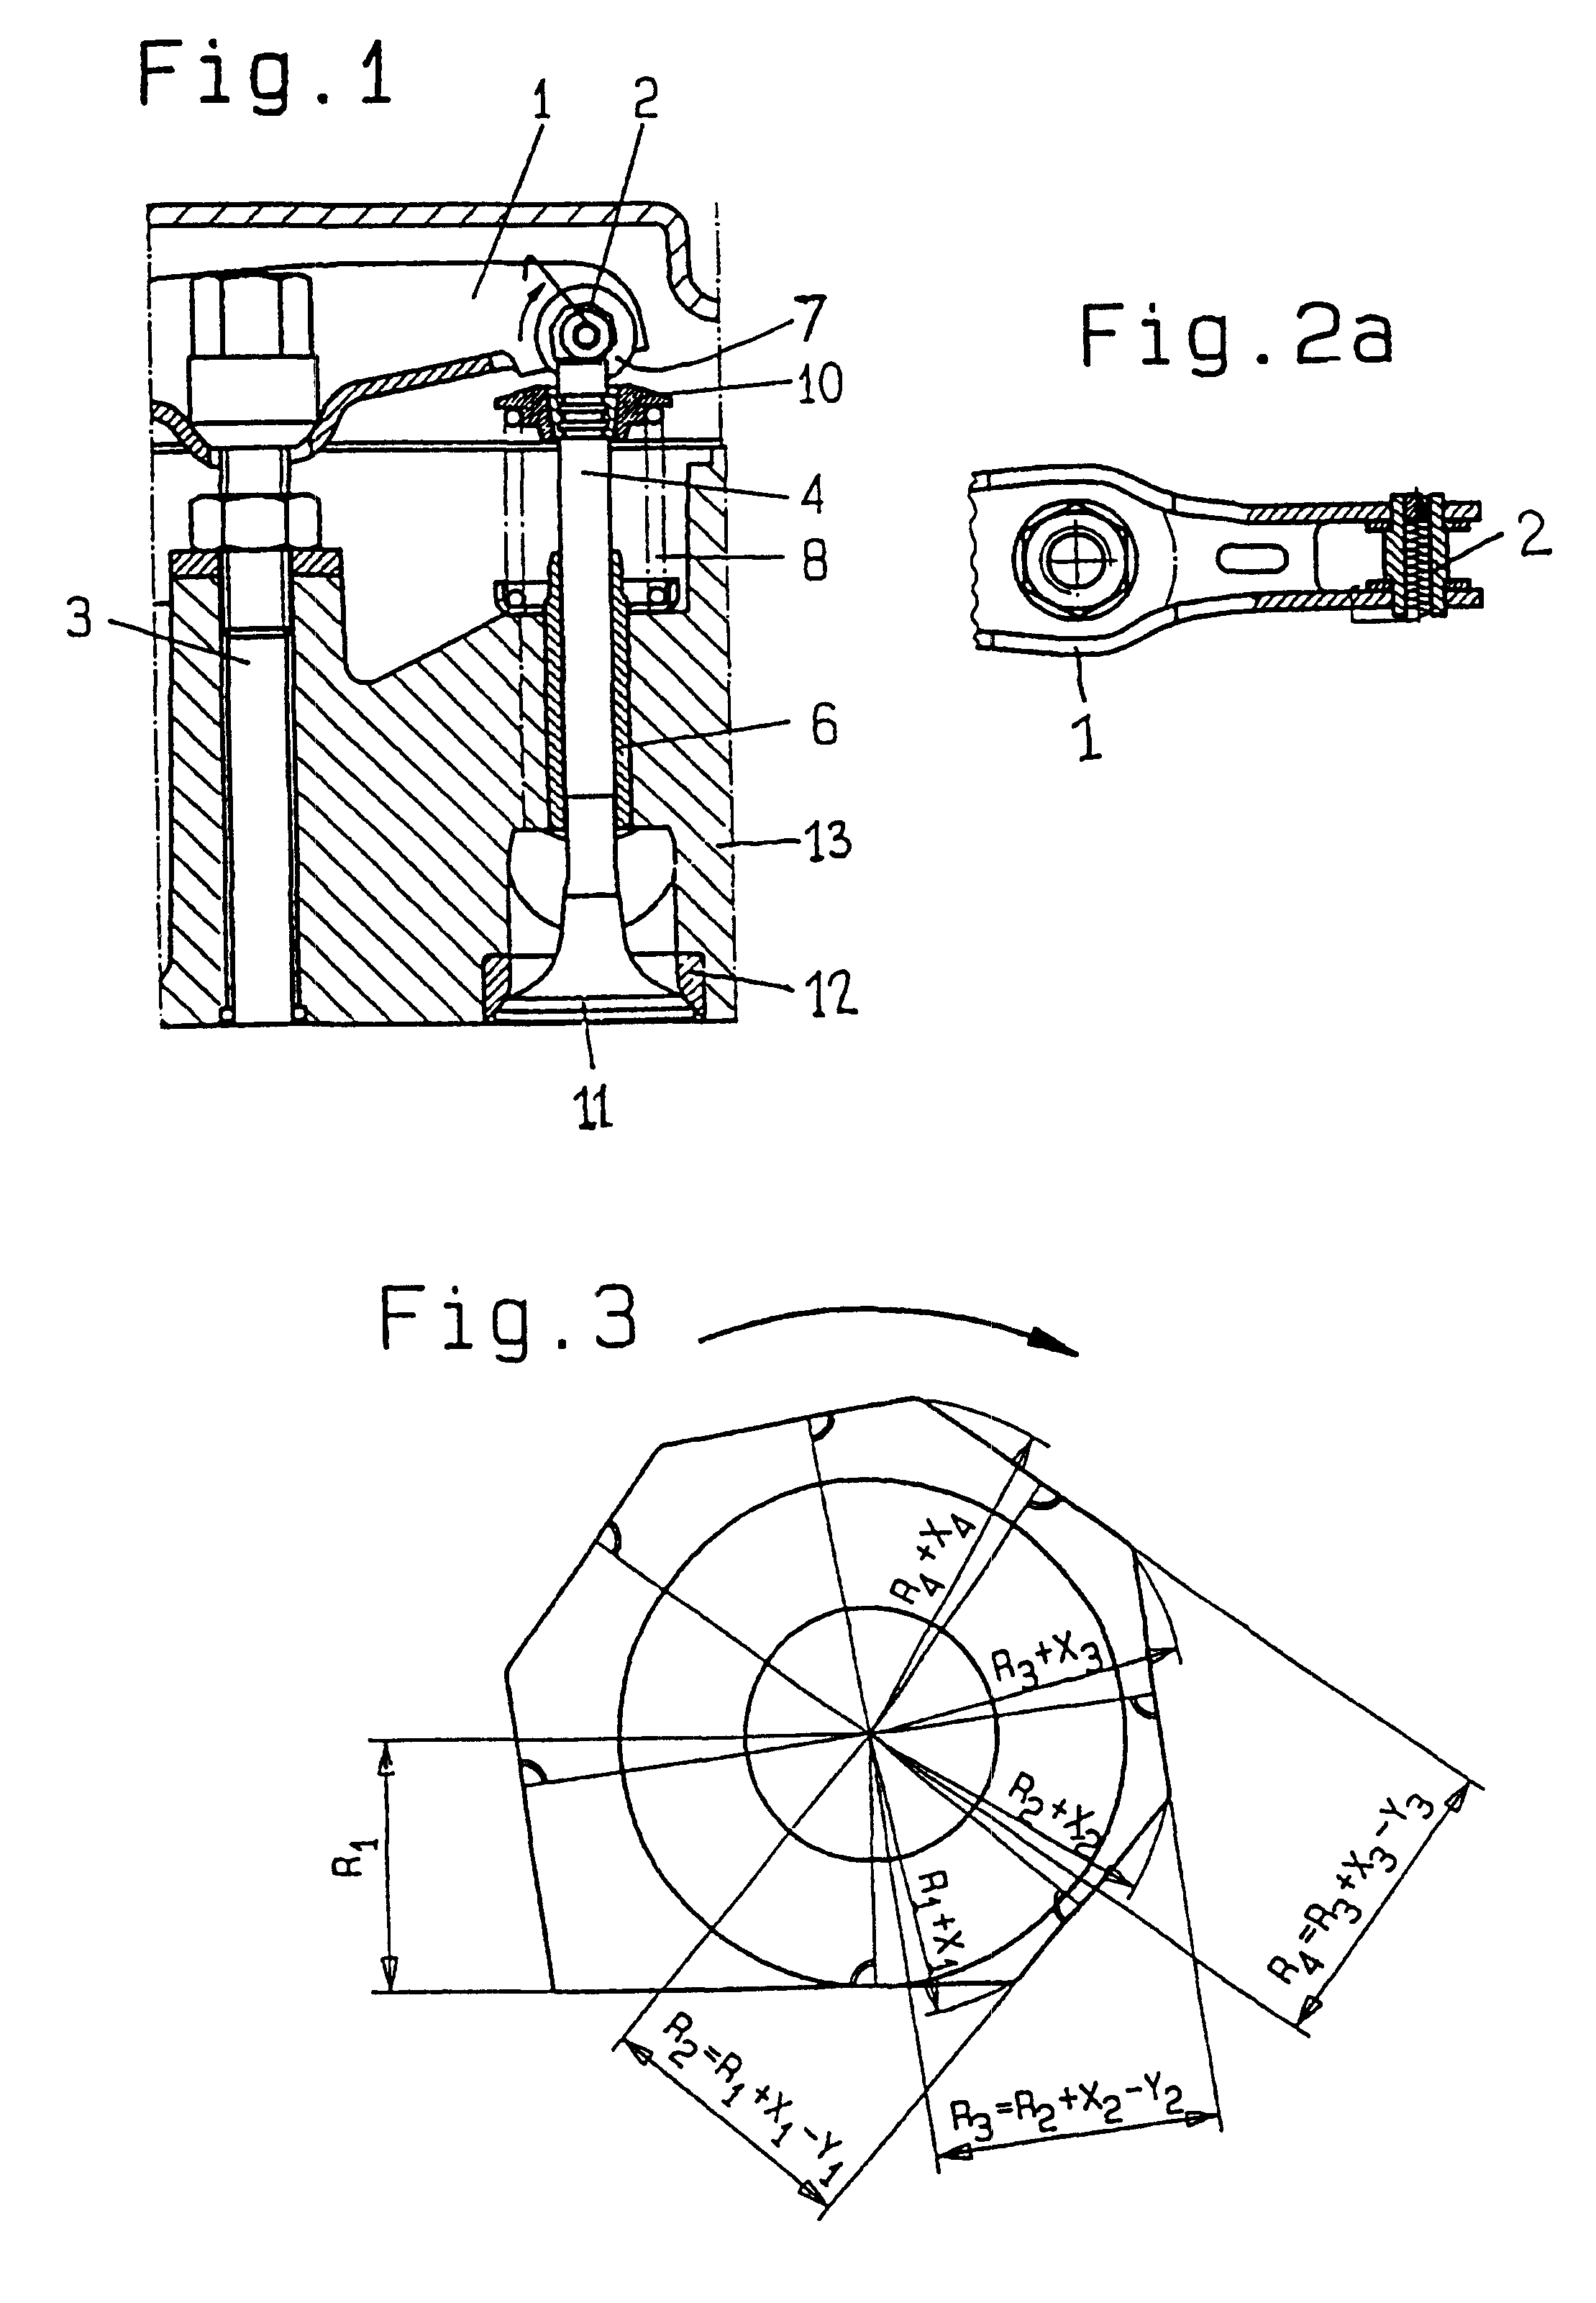 Combustion Engine Lever : Patent us rocker lever for valve operation of an